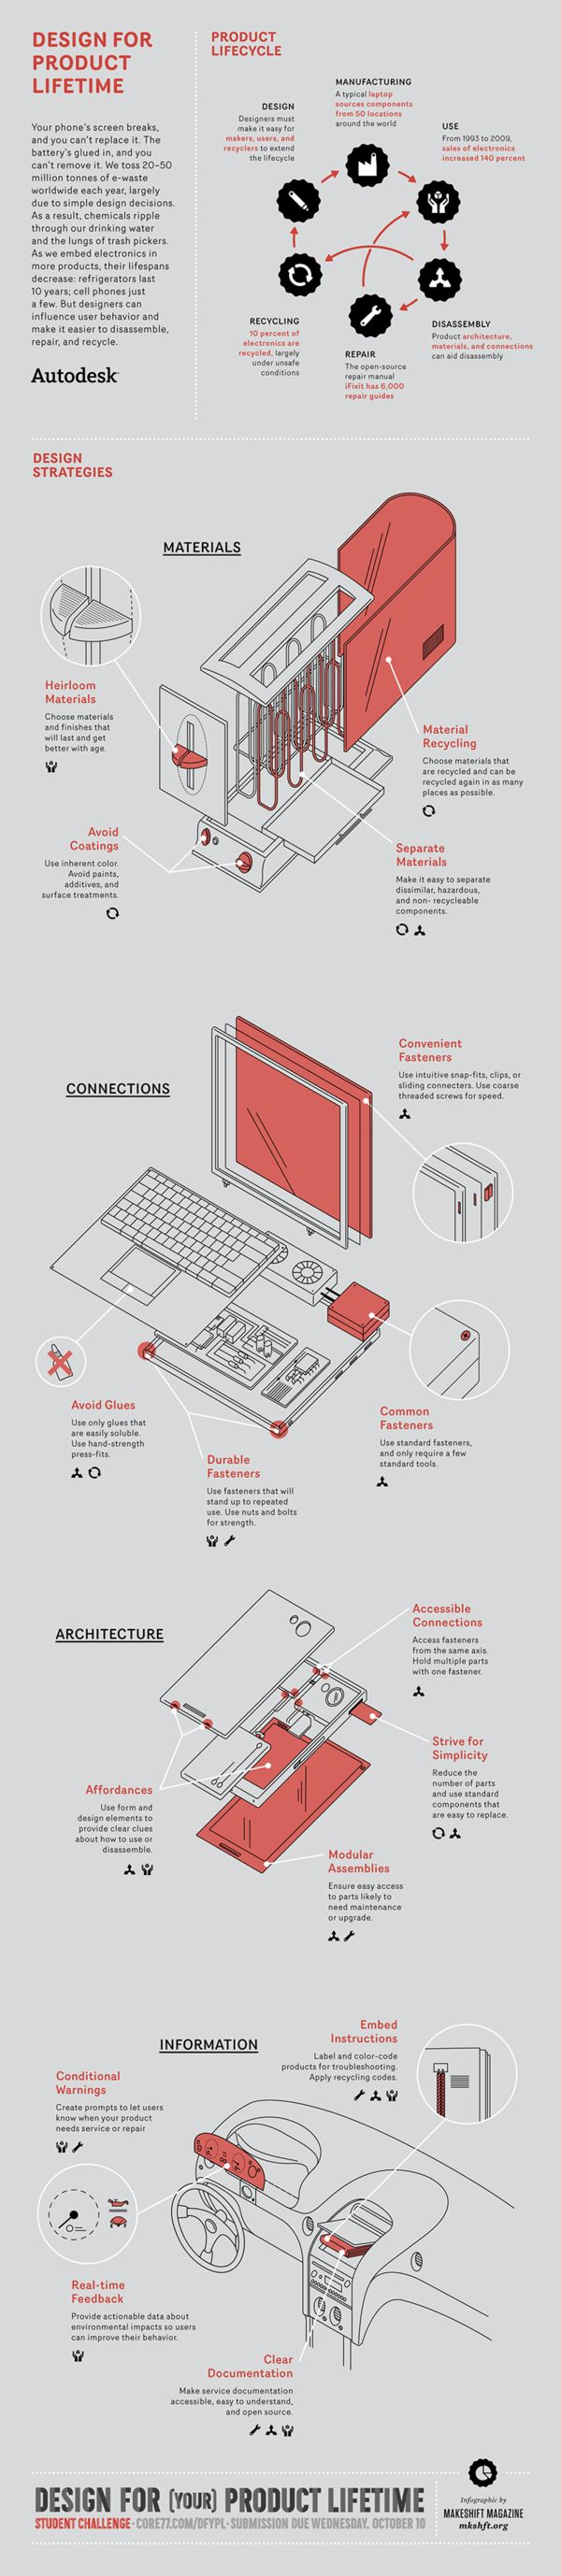 Design for product lifetime. #infographic #design